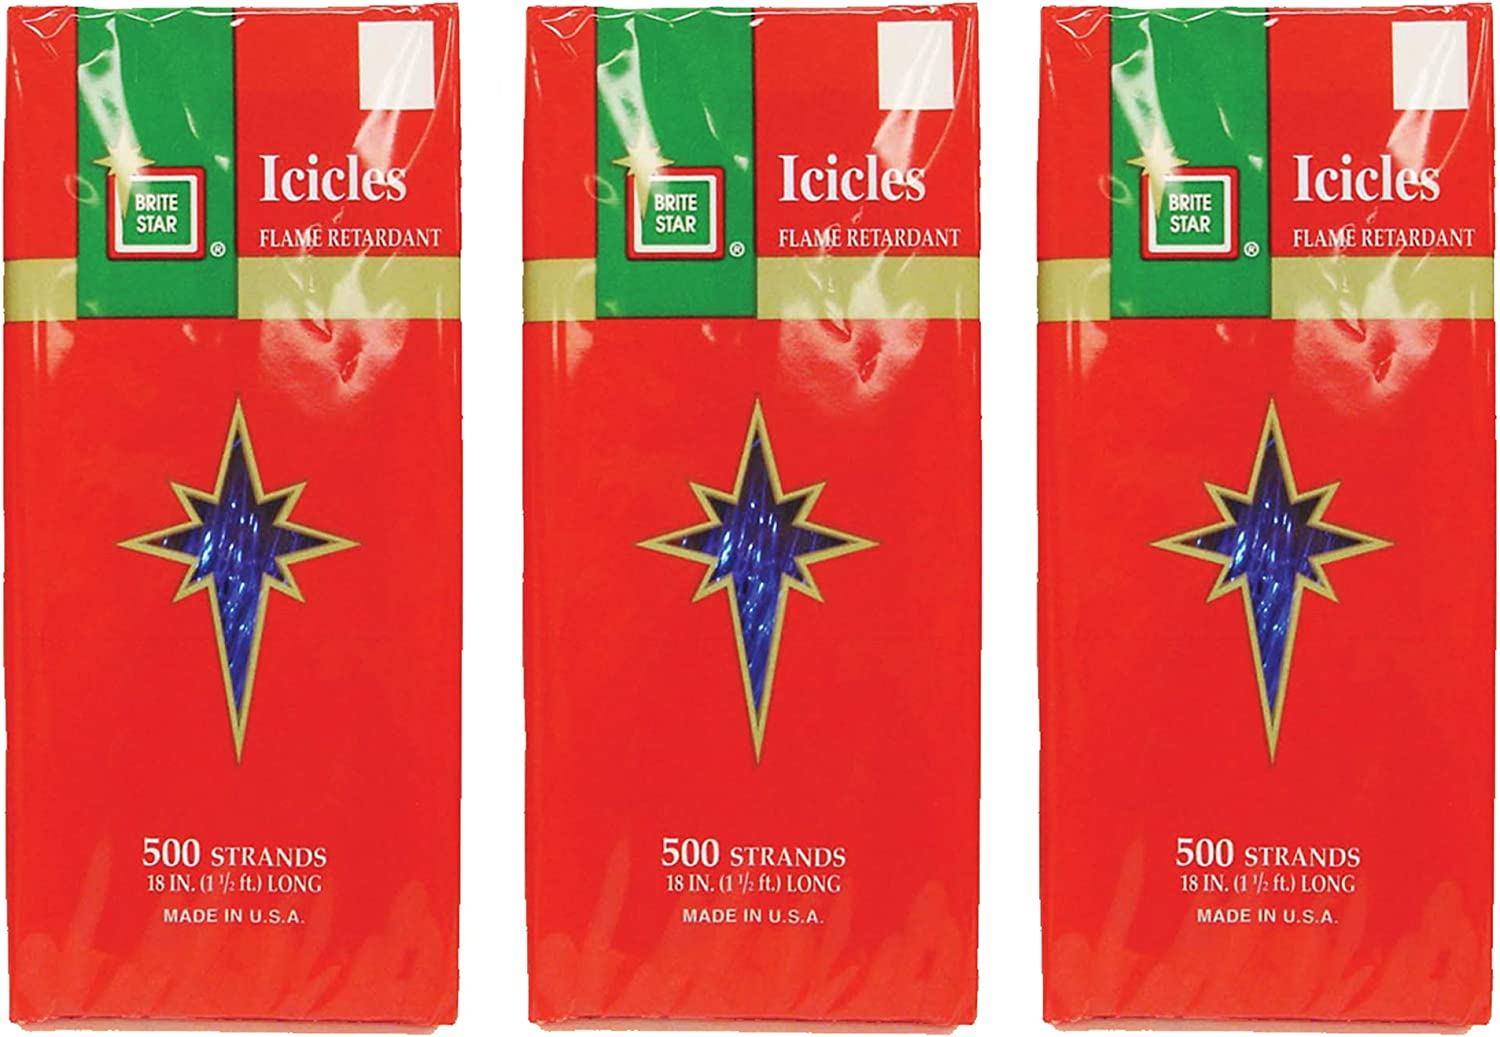 Never Opened New Old Stock Made in the USA Plastic icicles for Christmas tree by Brite Star 500 strands 18 inches long